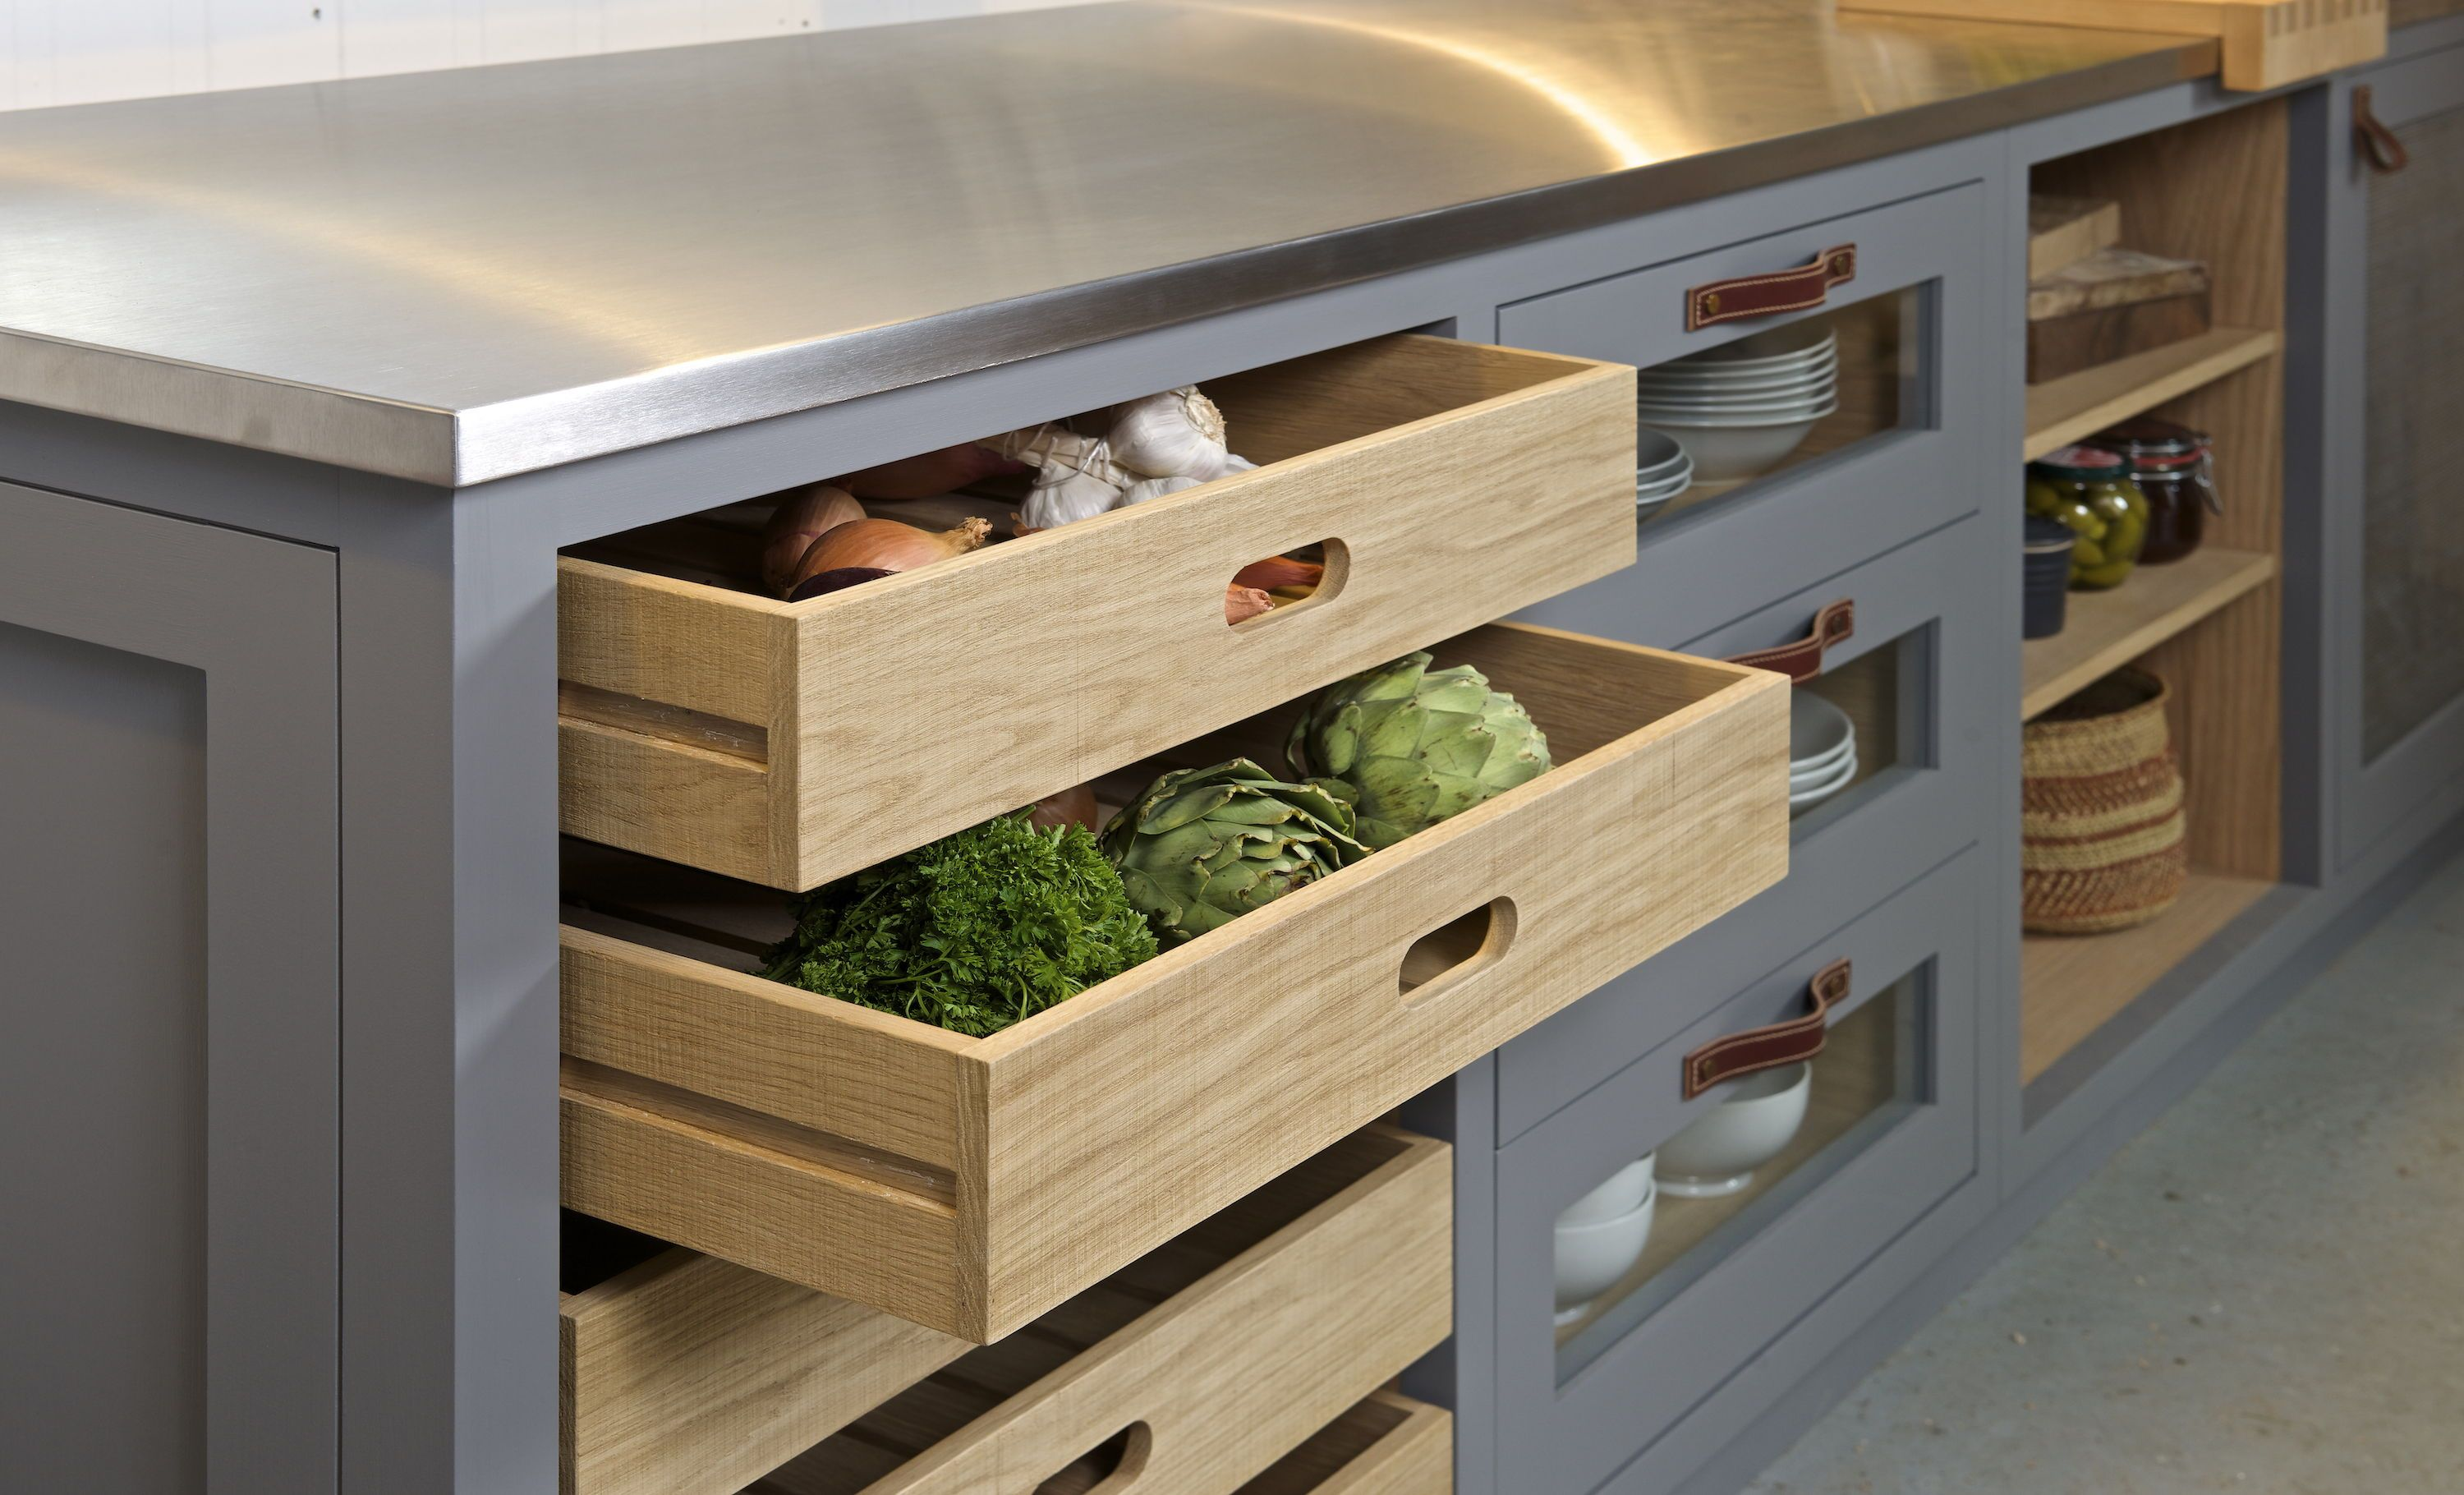 One Of Our Freestanding Kitchen Cabinets With Slatted Base Vegetable Drawers Leather Handles Shaker Style Kitchen Cabinets Bespoke Kitchen Design Wood Kitchen